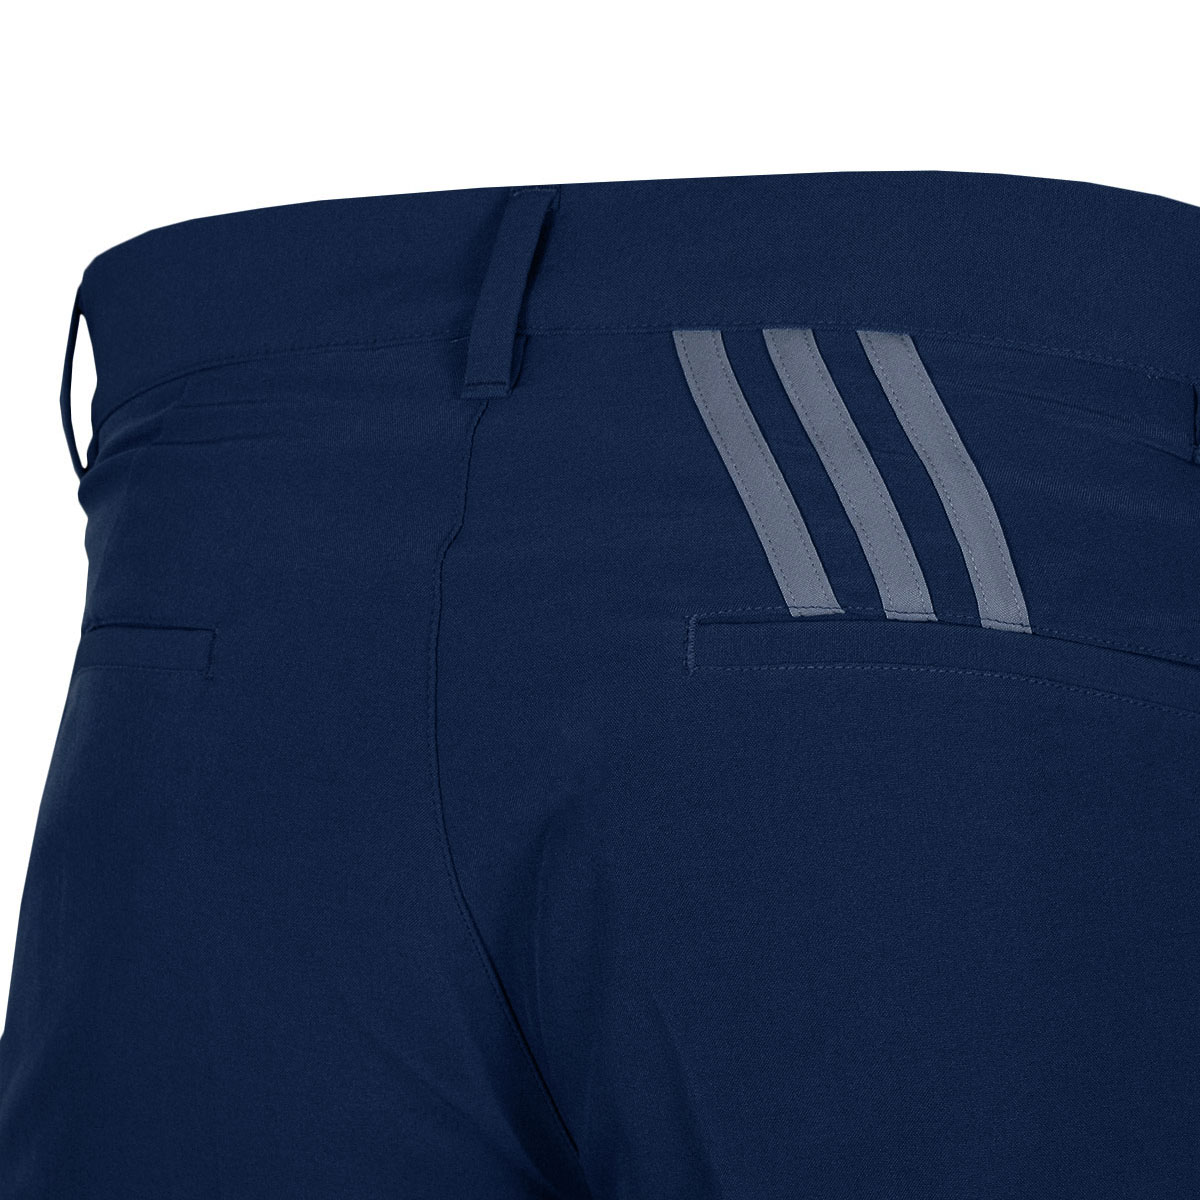 adidas-Golf-Mens-Ultimate-3-Stripes-Stretch-Pant-Trousers-44-OFF-RRP Indexbild 16